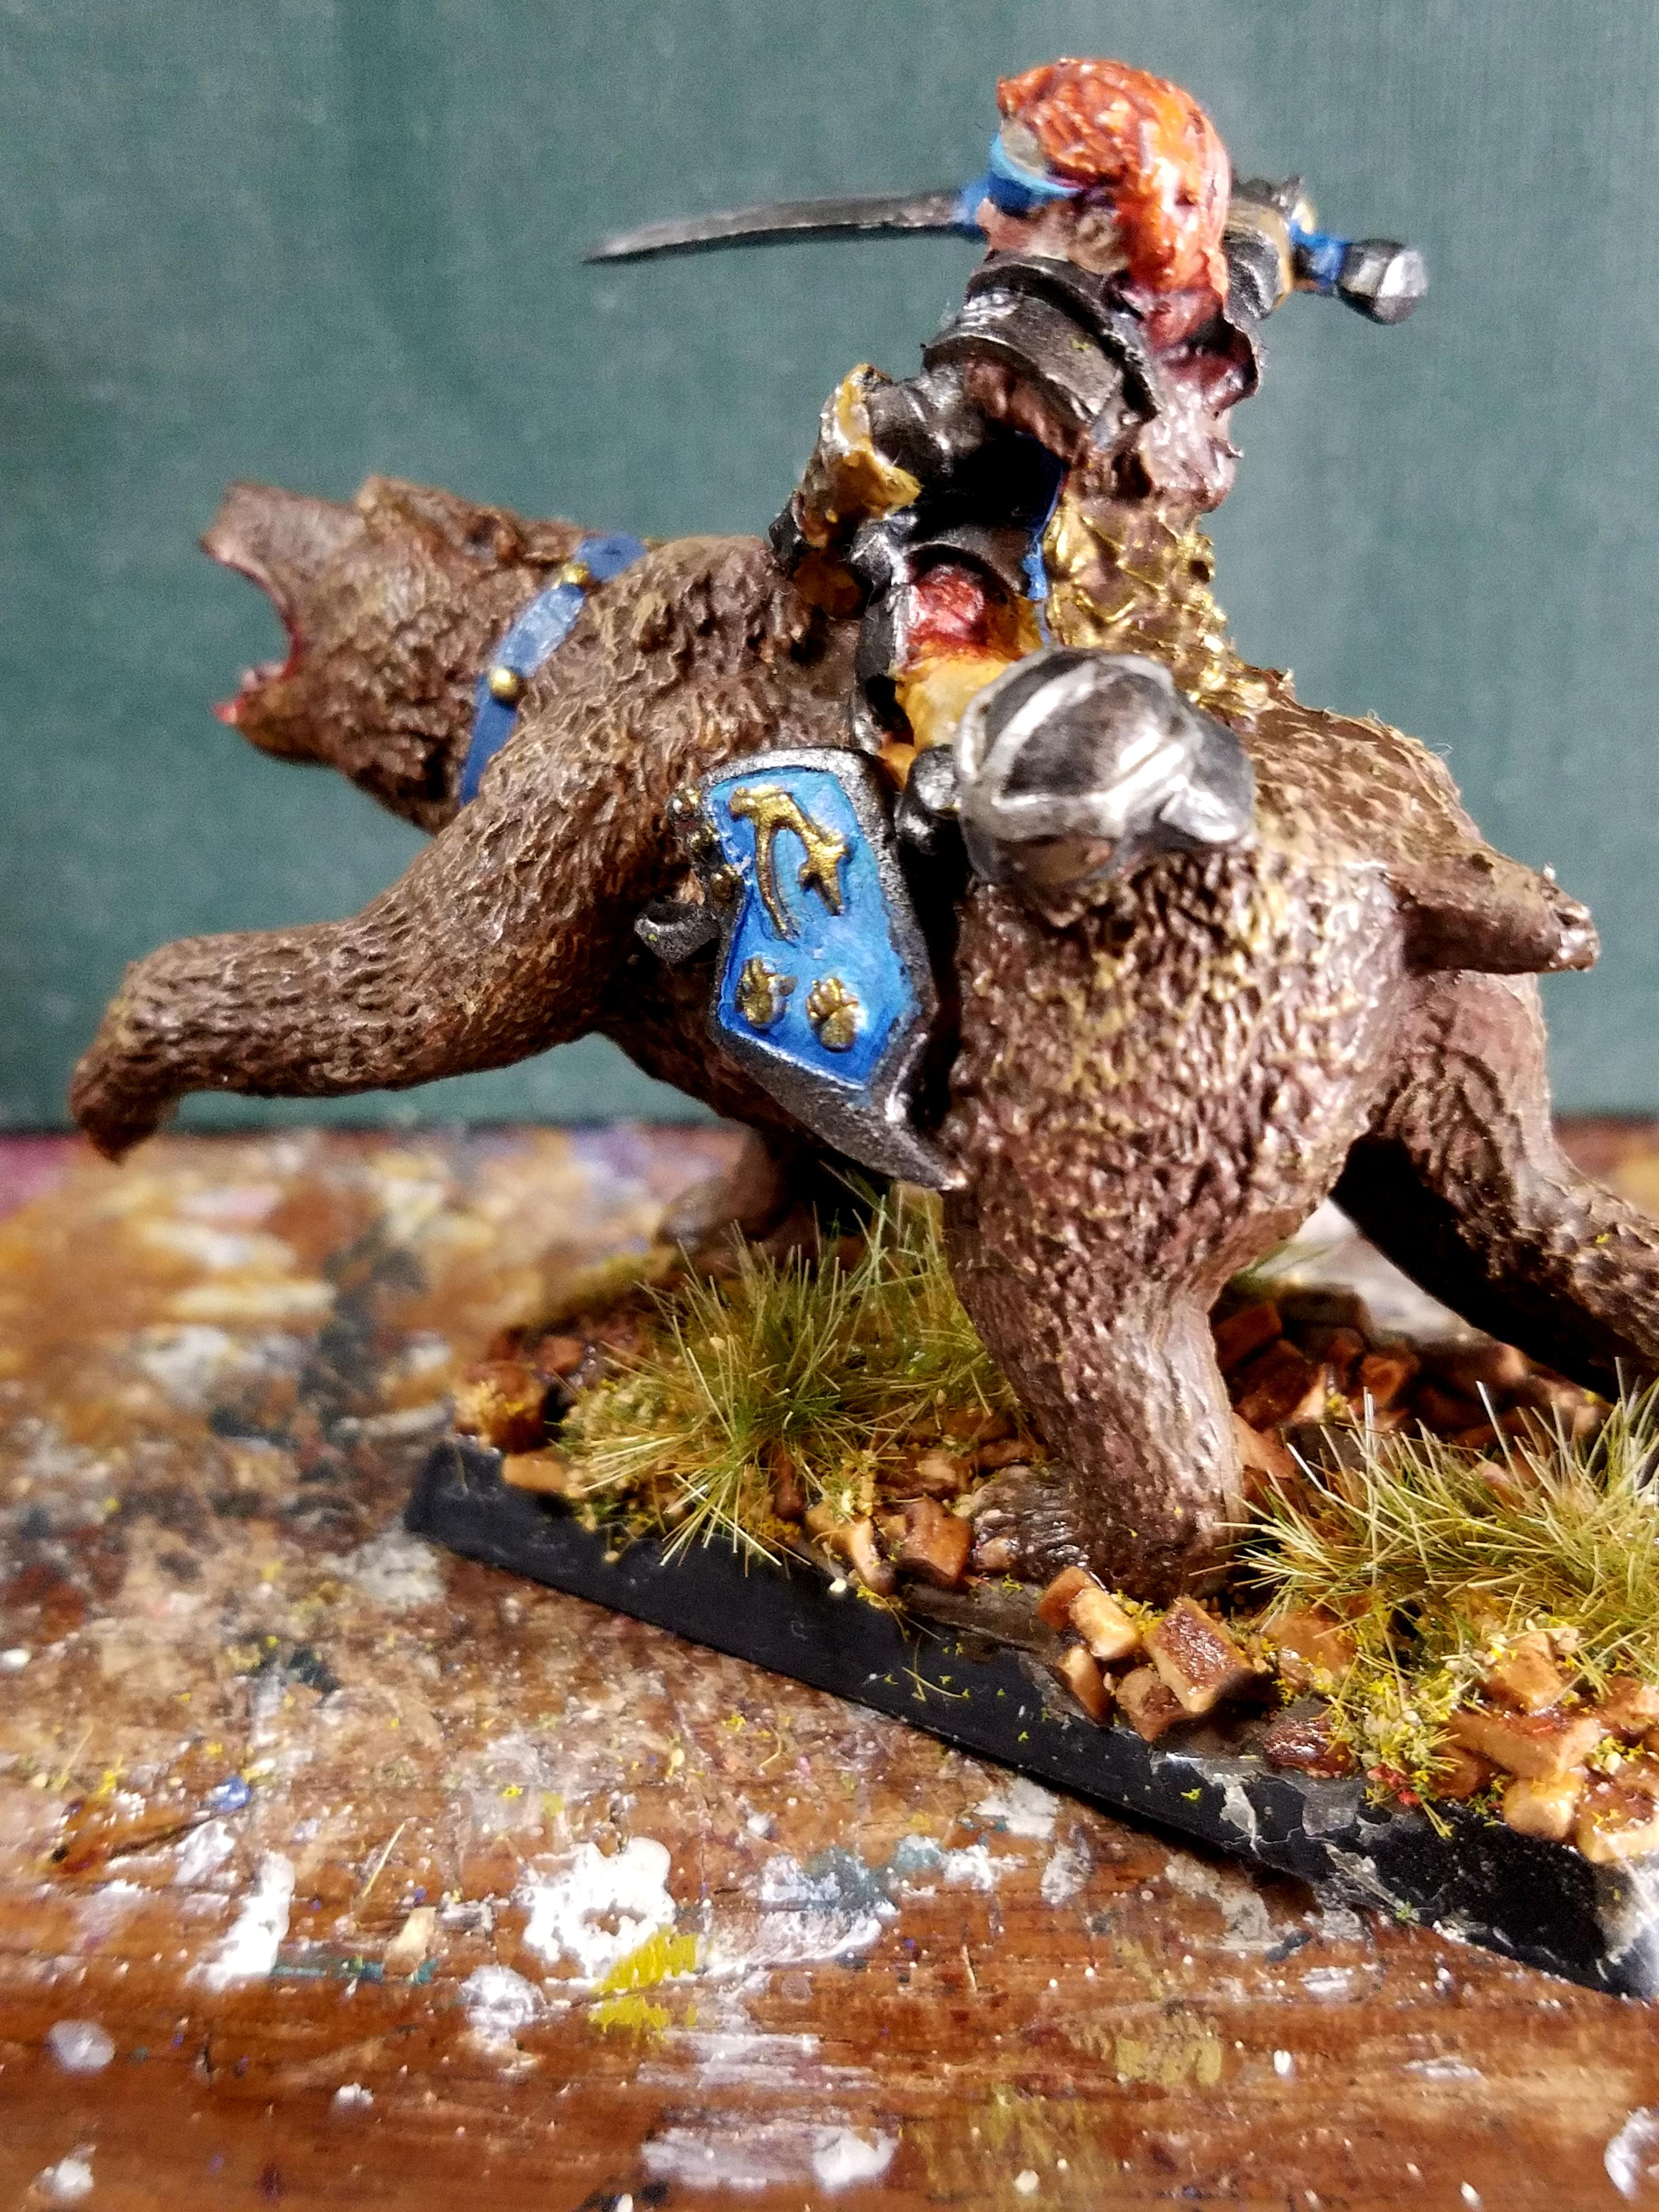 Bear, Bear Cavalry, Dwarves, Half Assed Paint Jobs, I Swear The Eyes Are Painted Honest, Reaper Minis